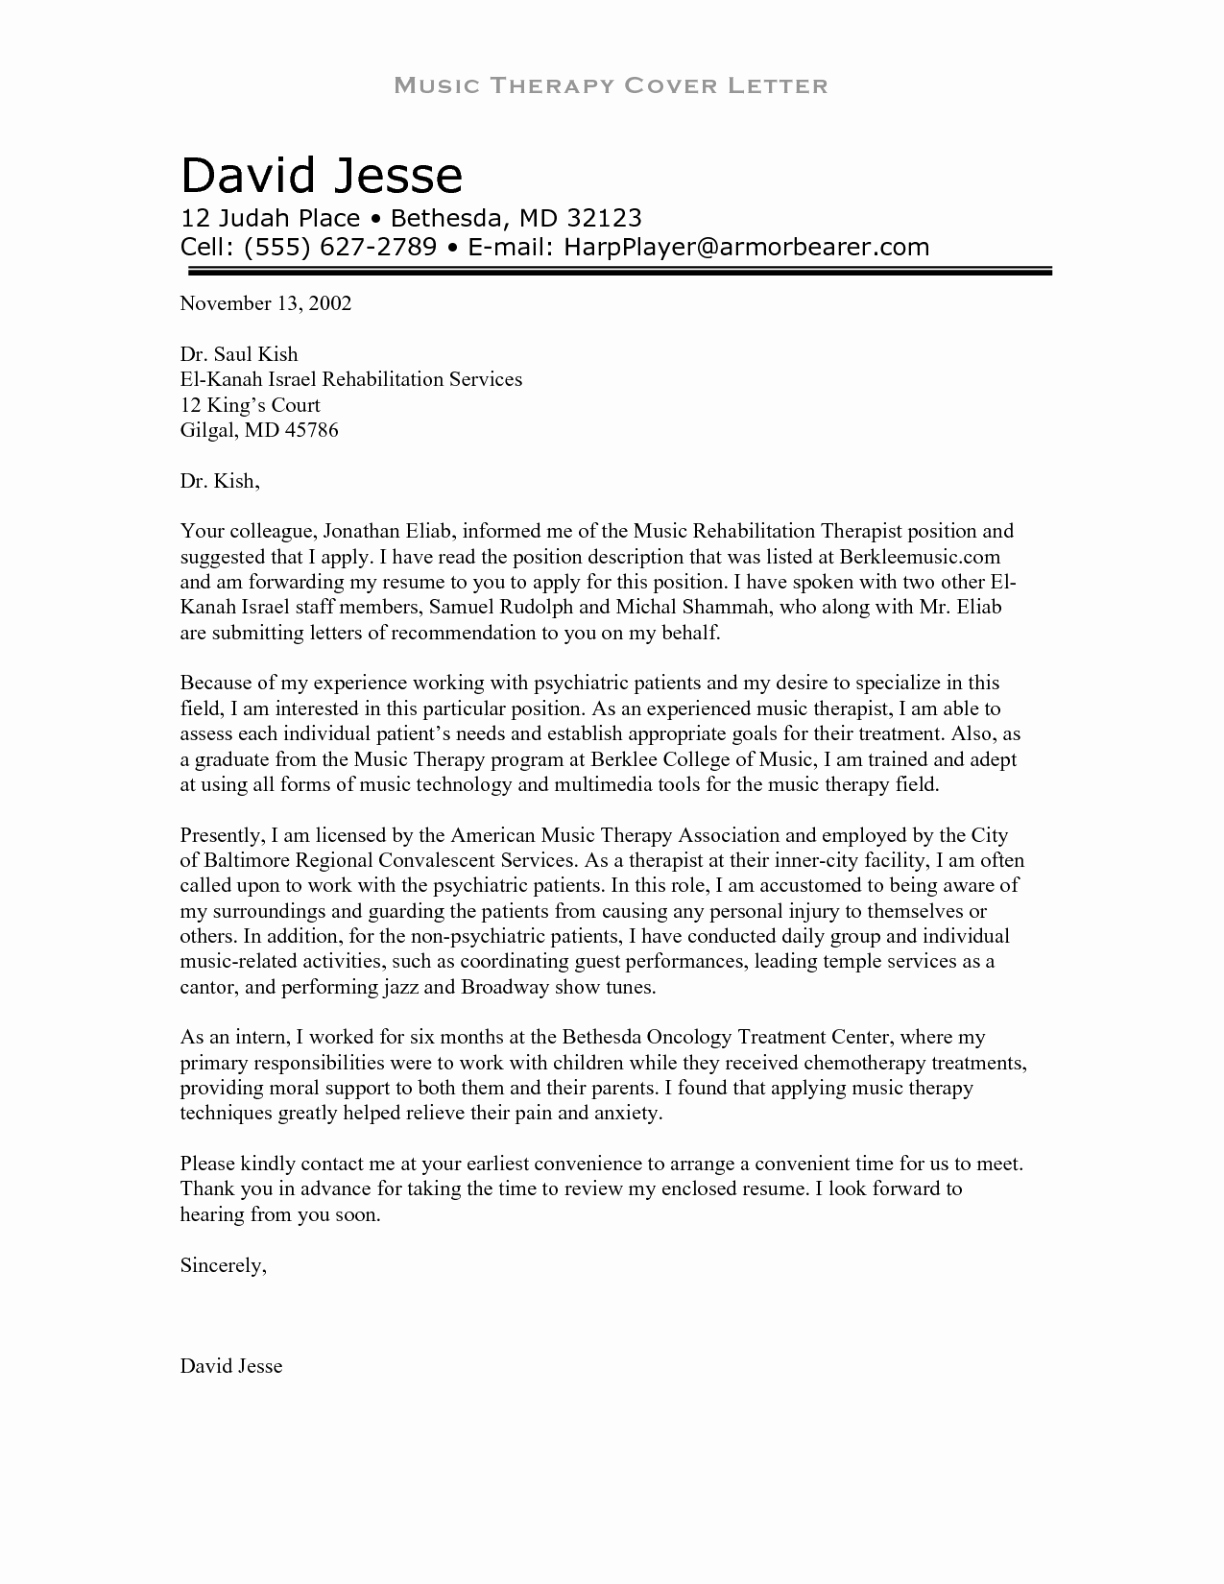 Physical therapist Cover Letter Template Samples | Letter Template ...